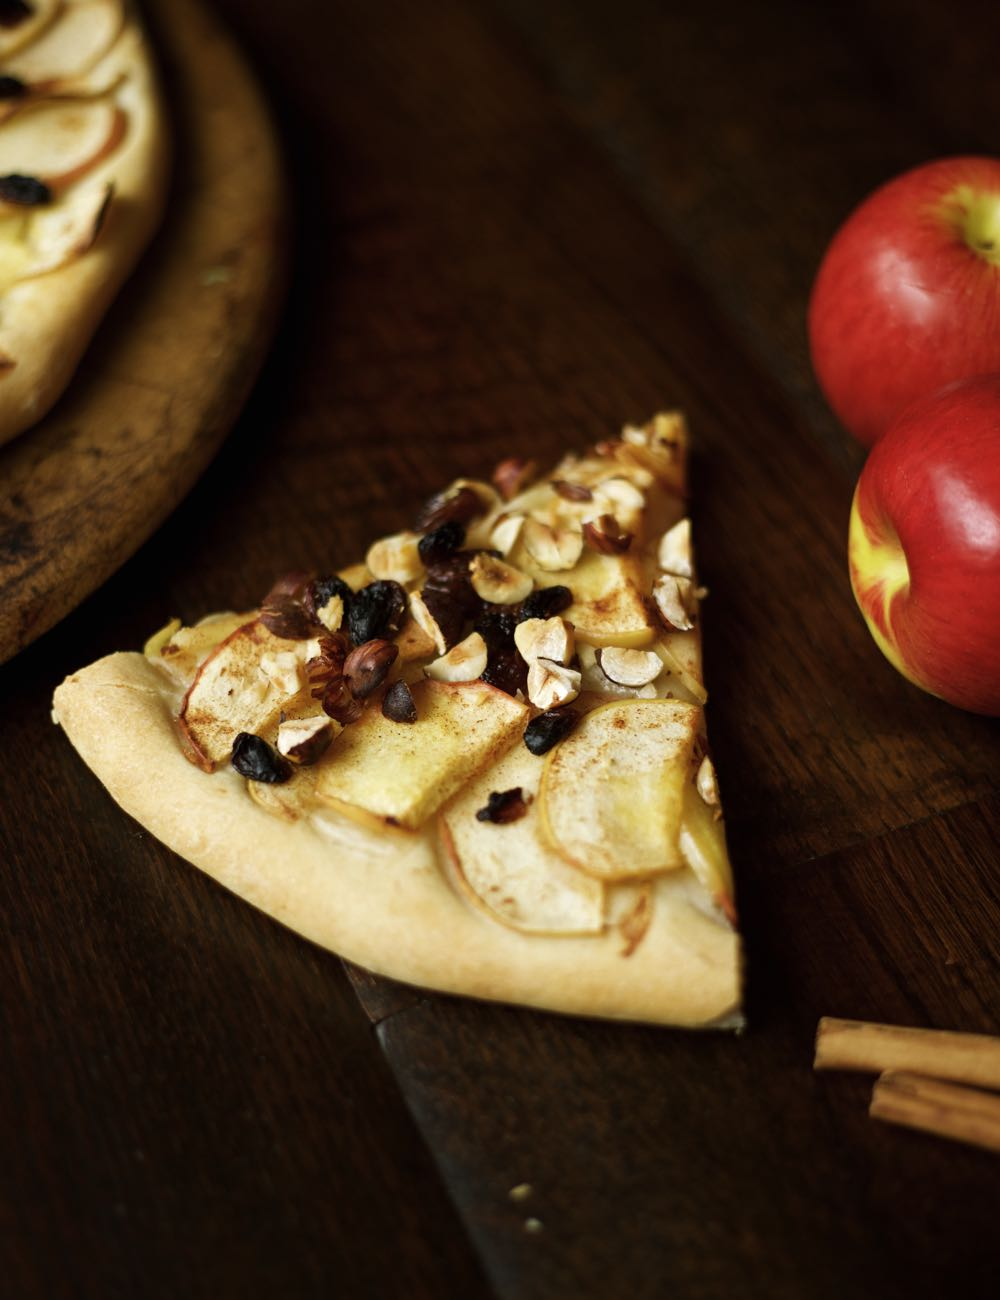 A slice of apple and hazelnut pizza with juicy red apples and cinnamon.